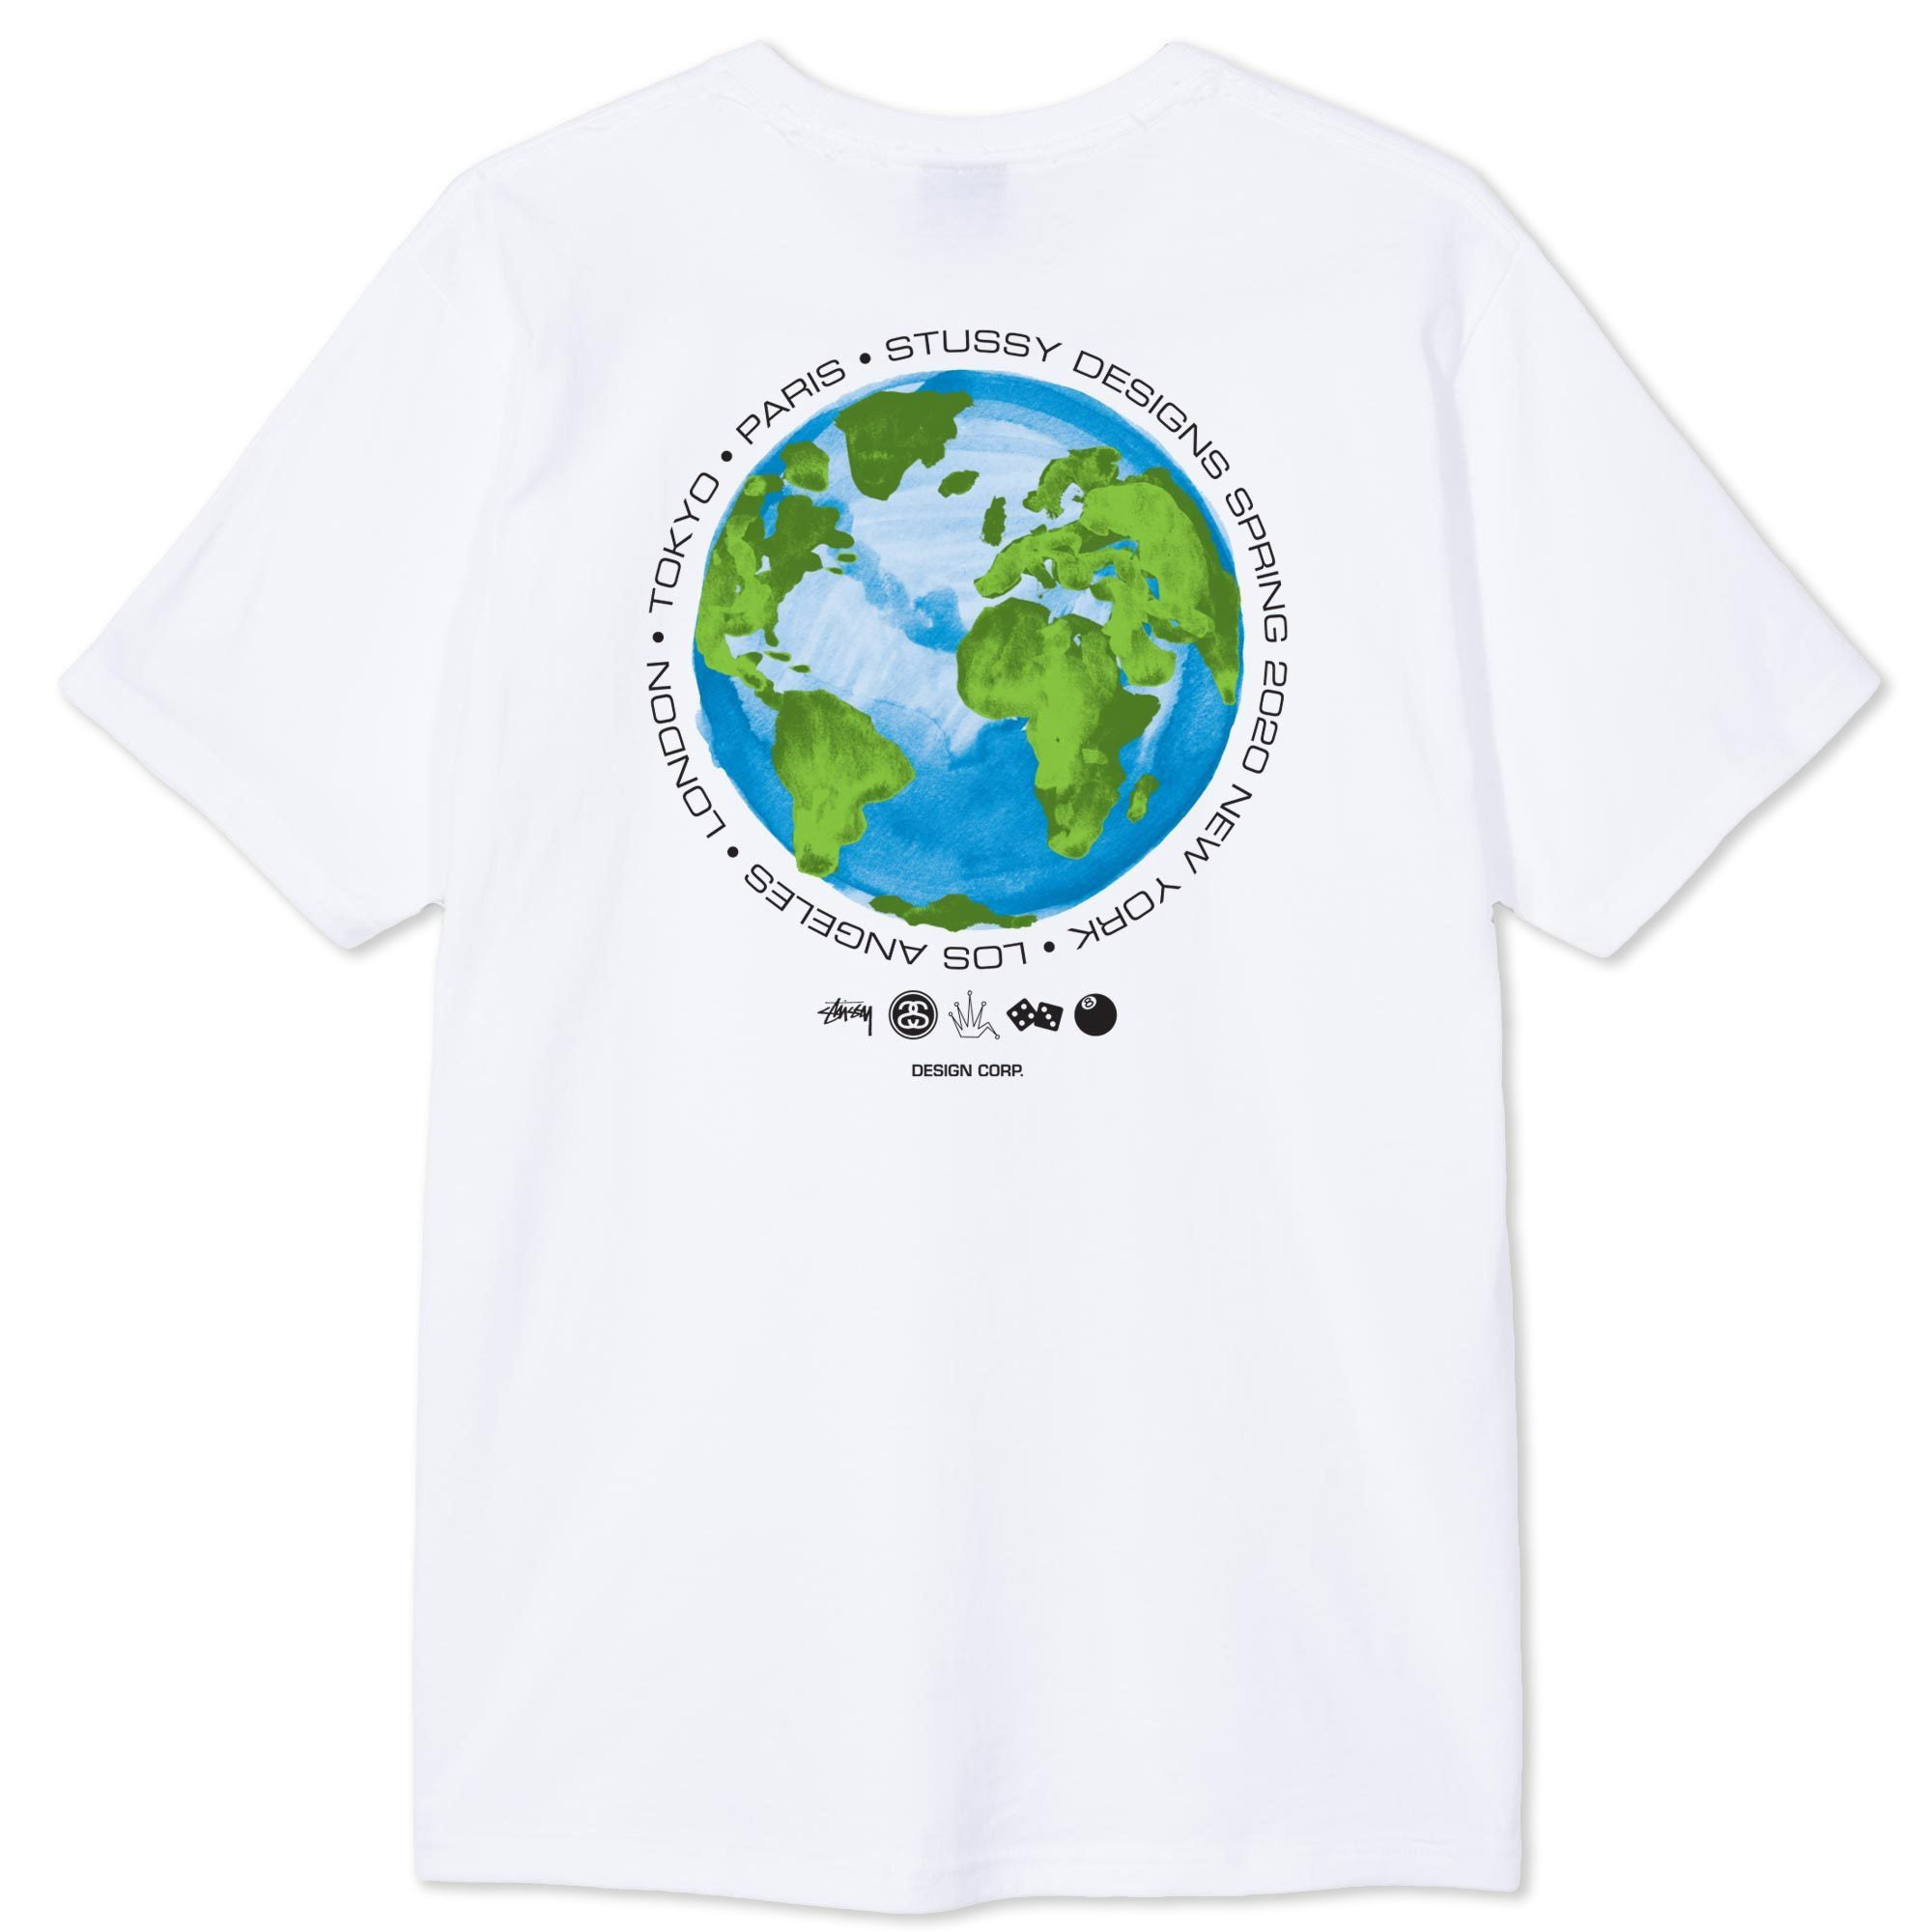 Stussy Global Design Corporation Tee White